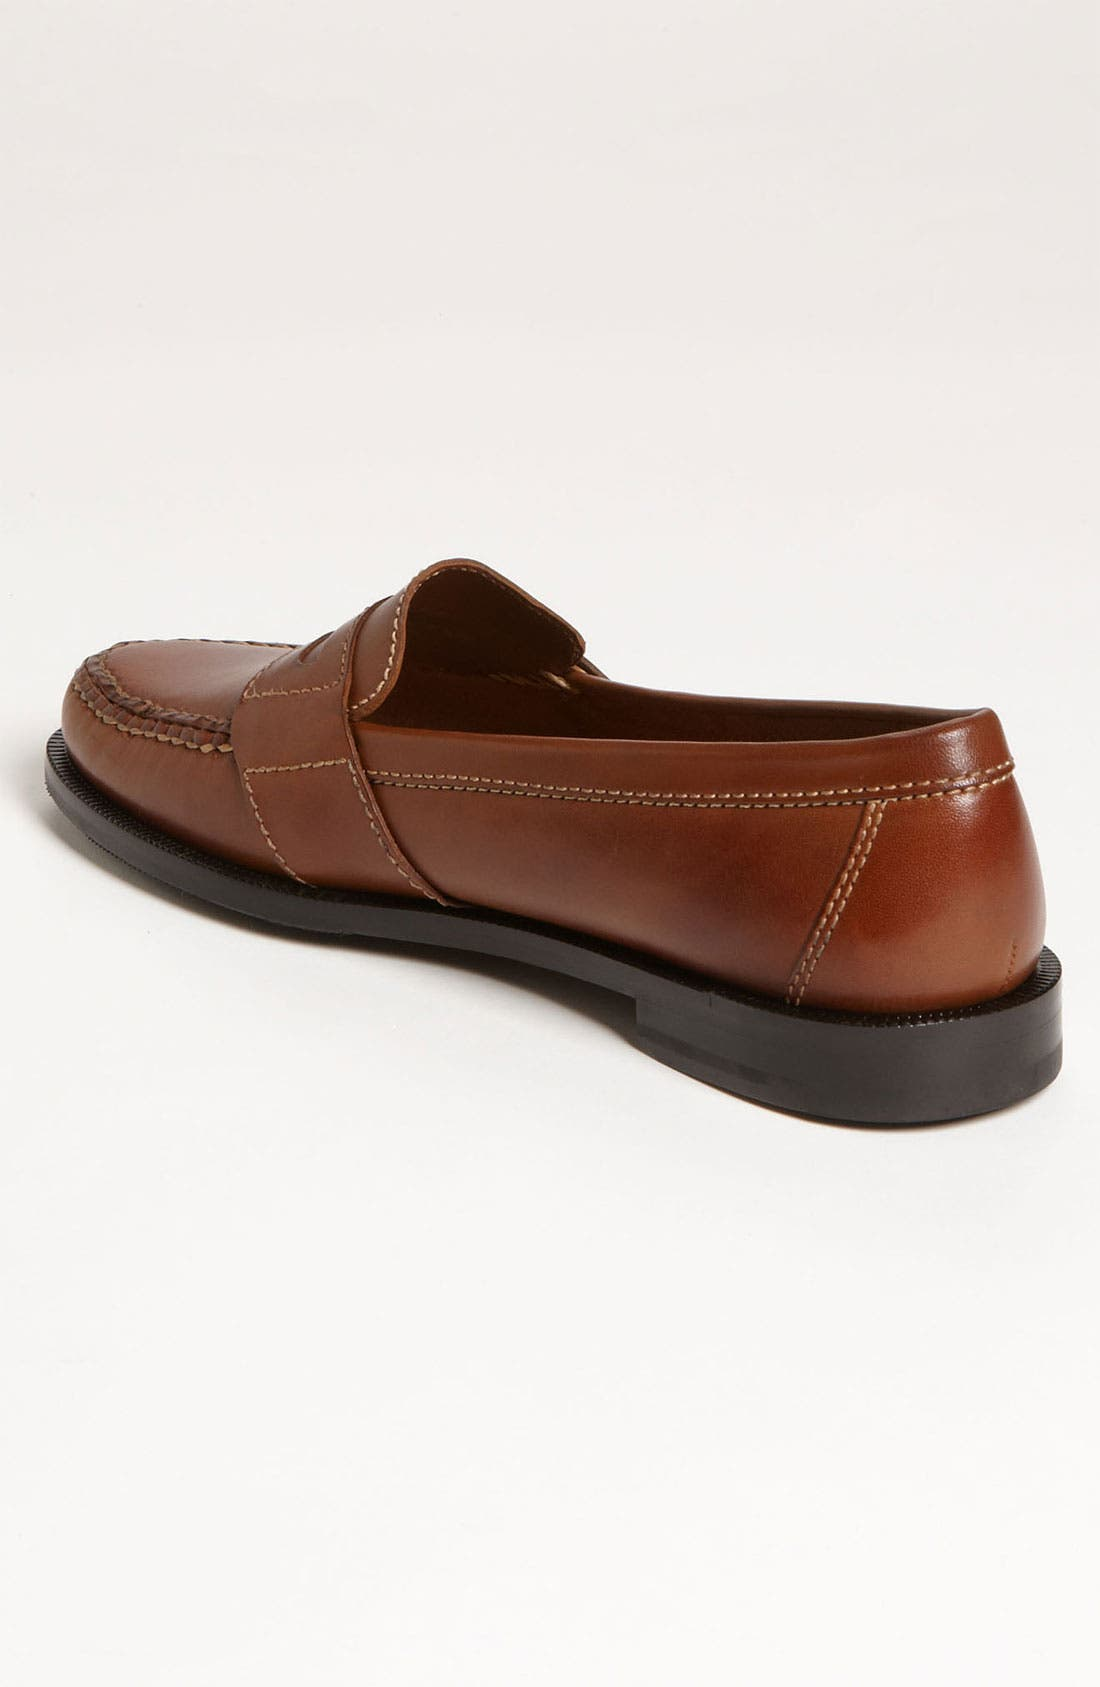 Alternate Image 2  - Cole Haan 'Douglas' Loafer (Online Only)   (Men)